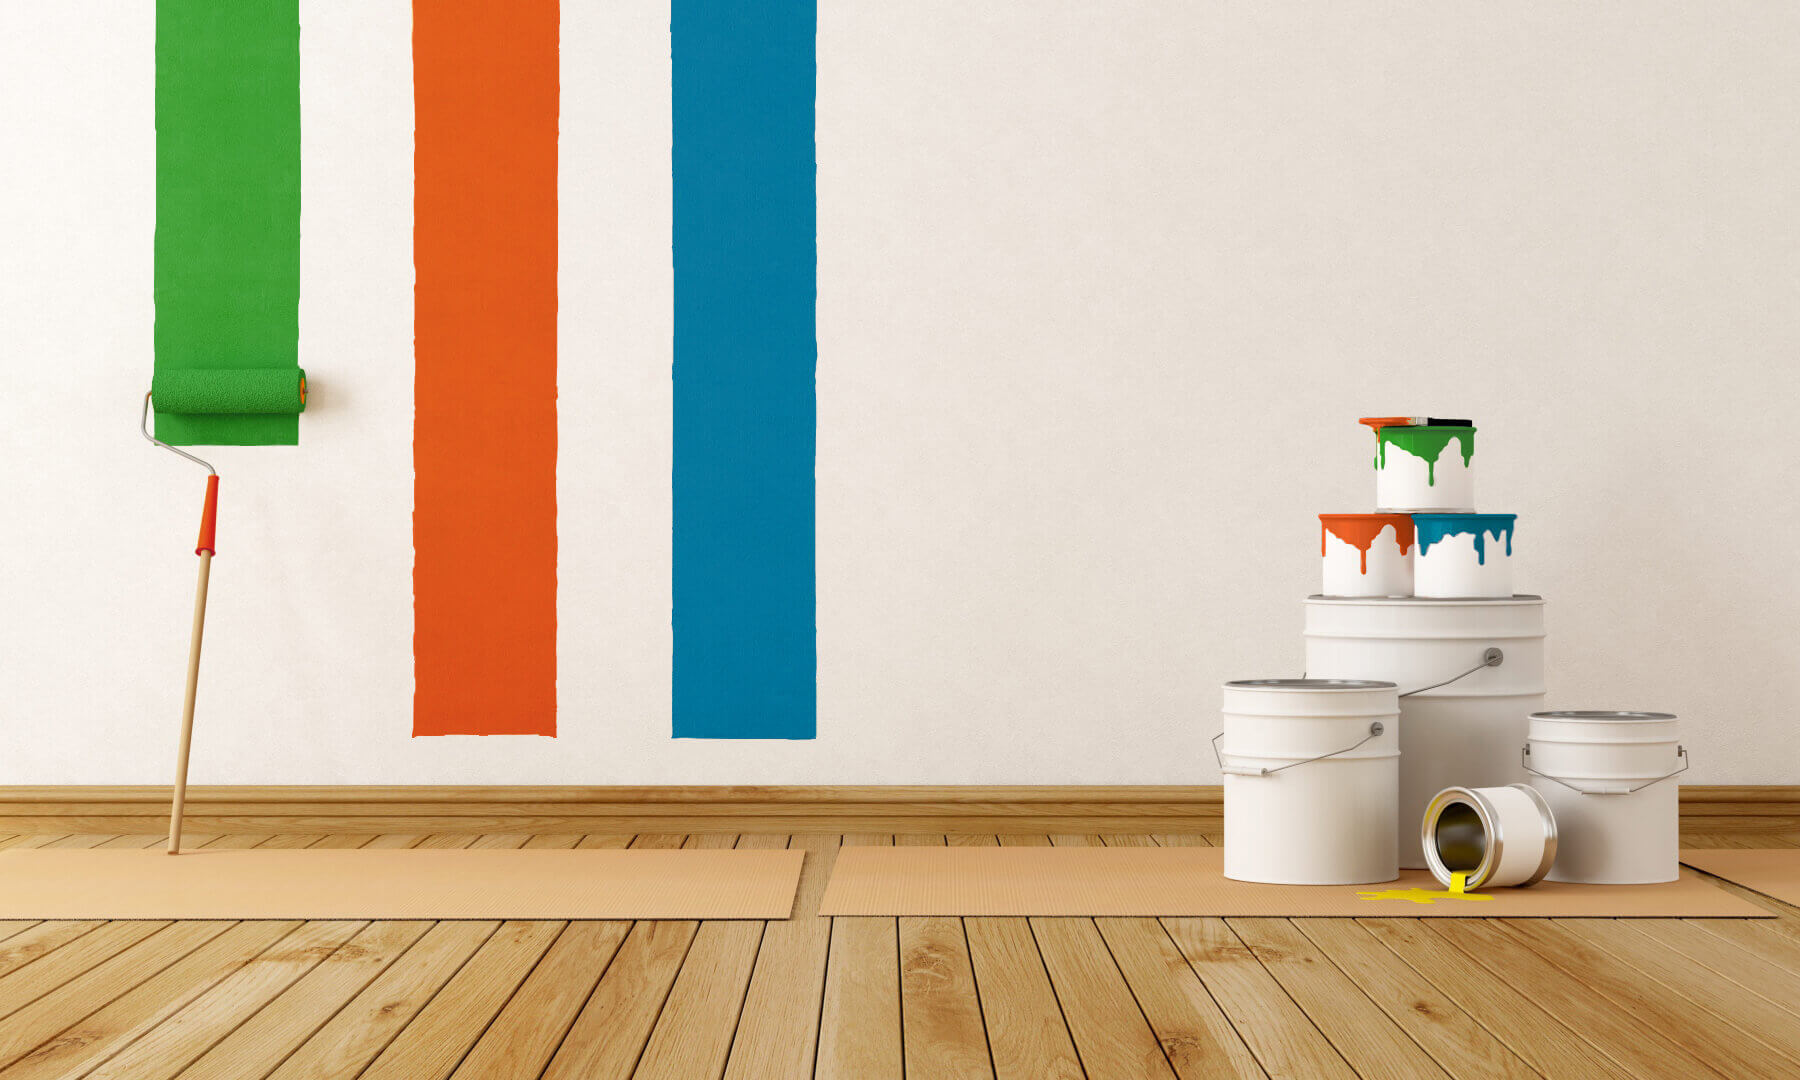 Painting the wall and selectively choosing out the best color for the room. There are paint buckets on the side of the wood floors. Painting a room the right color can make an instant mood change.